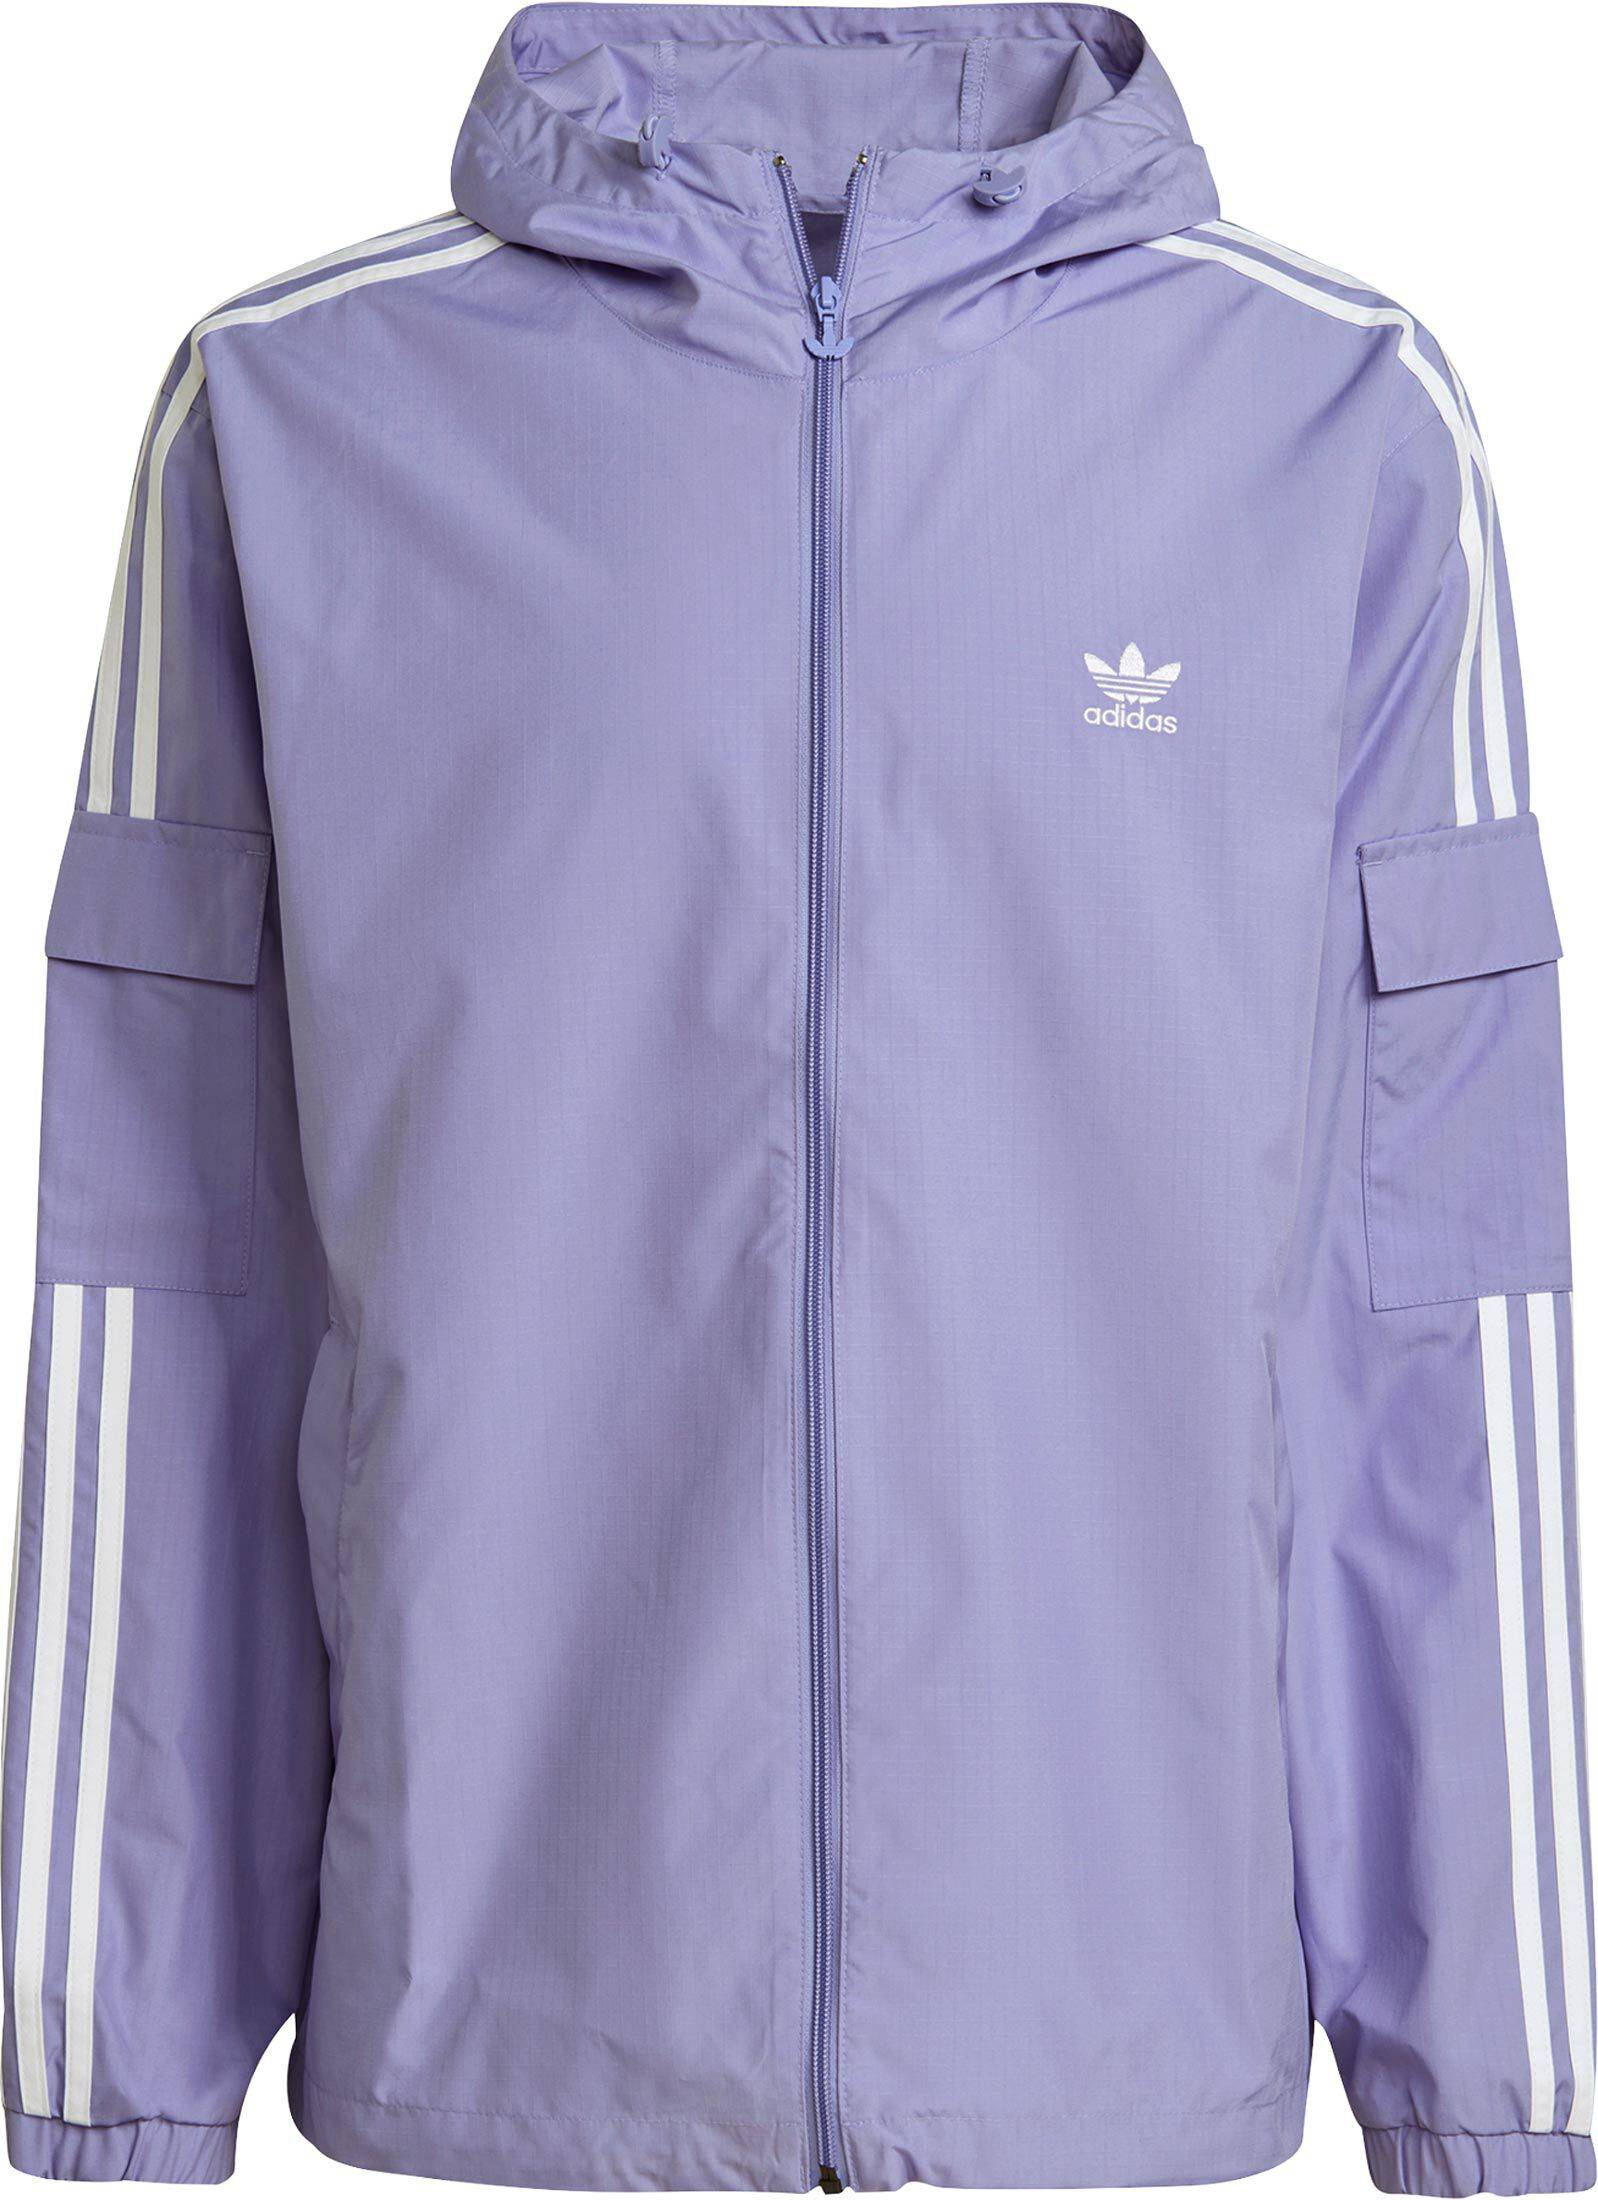 adidas Adicolor Classics 3-Stripes, taille S, homme, violet